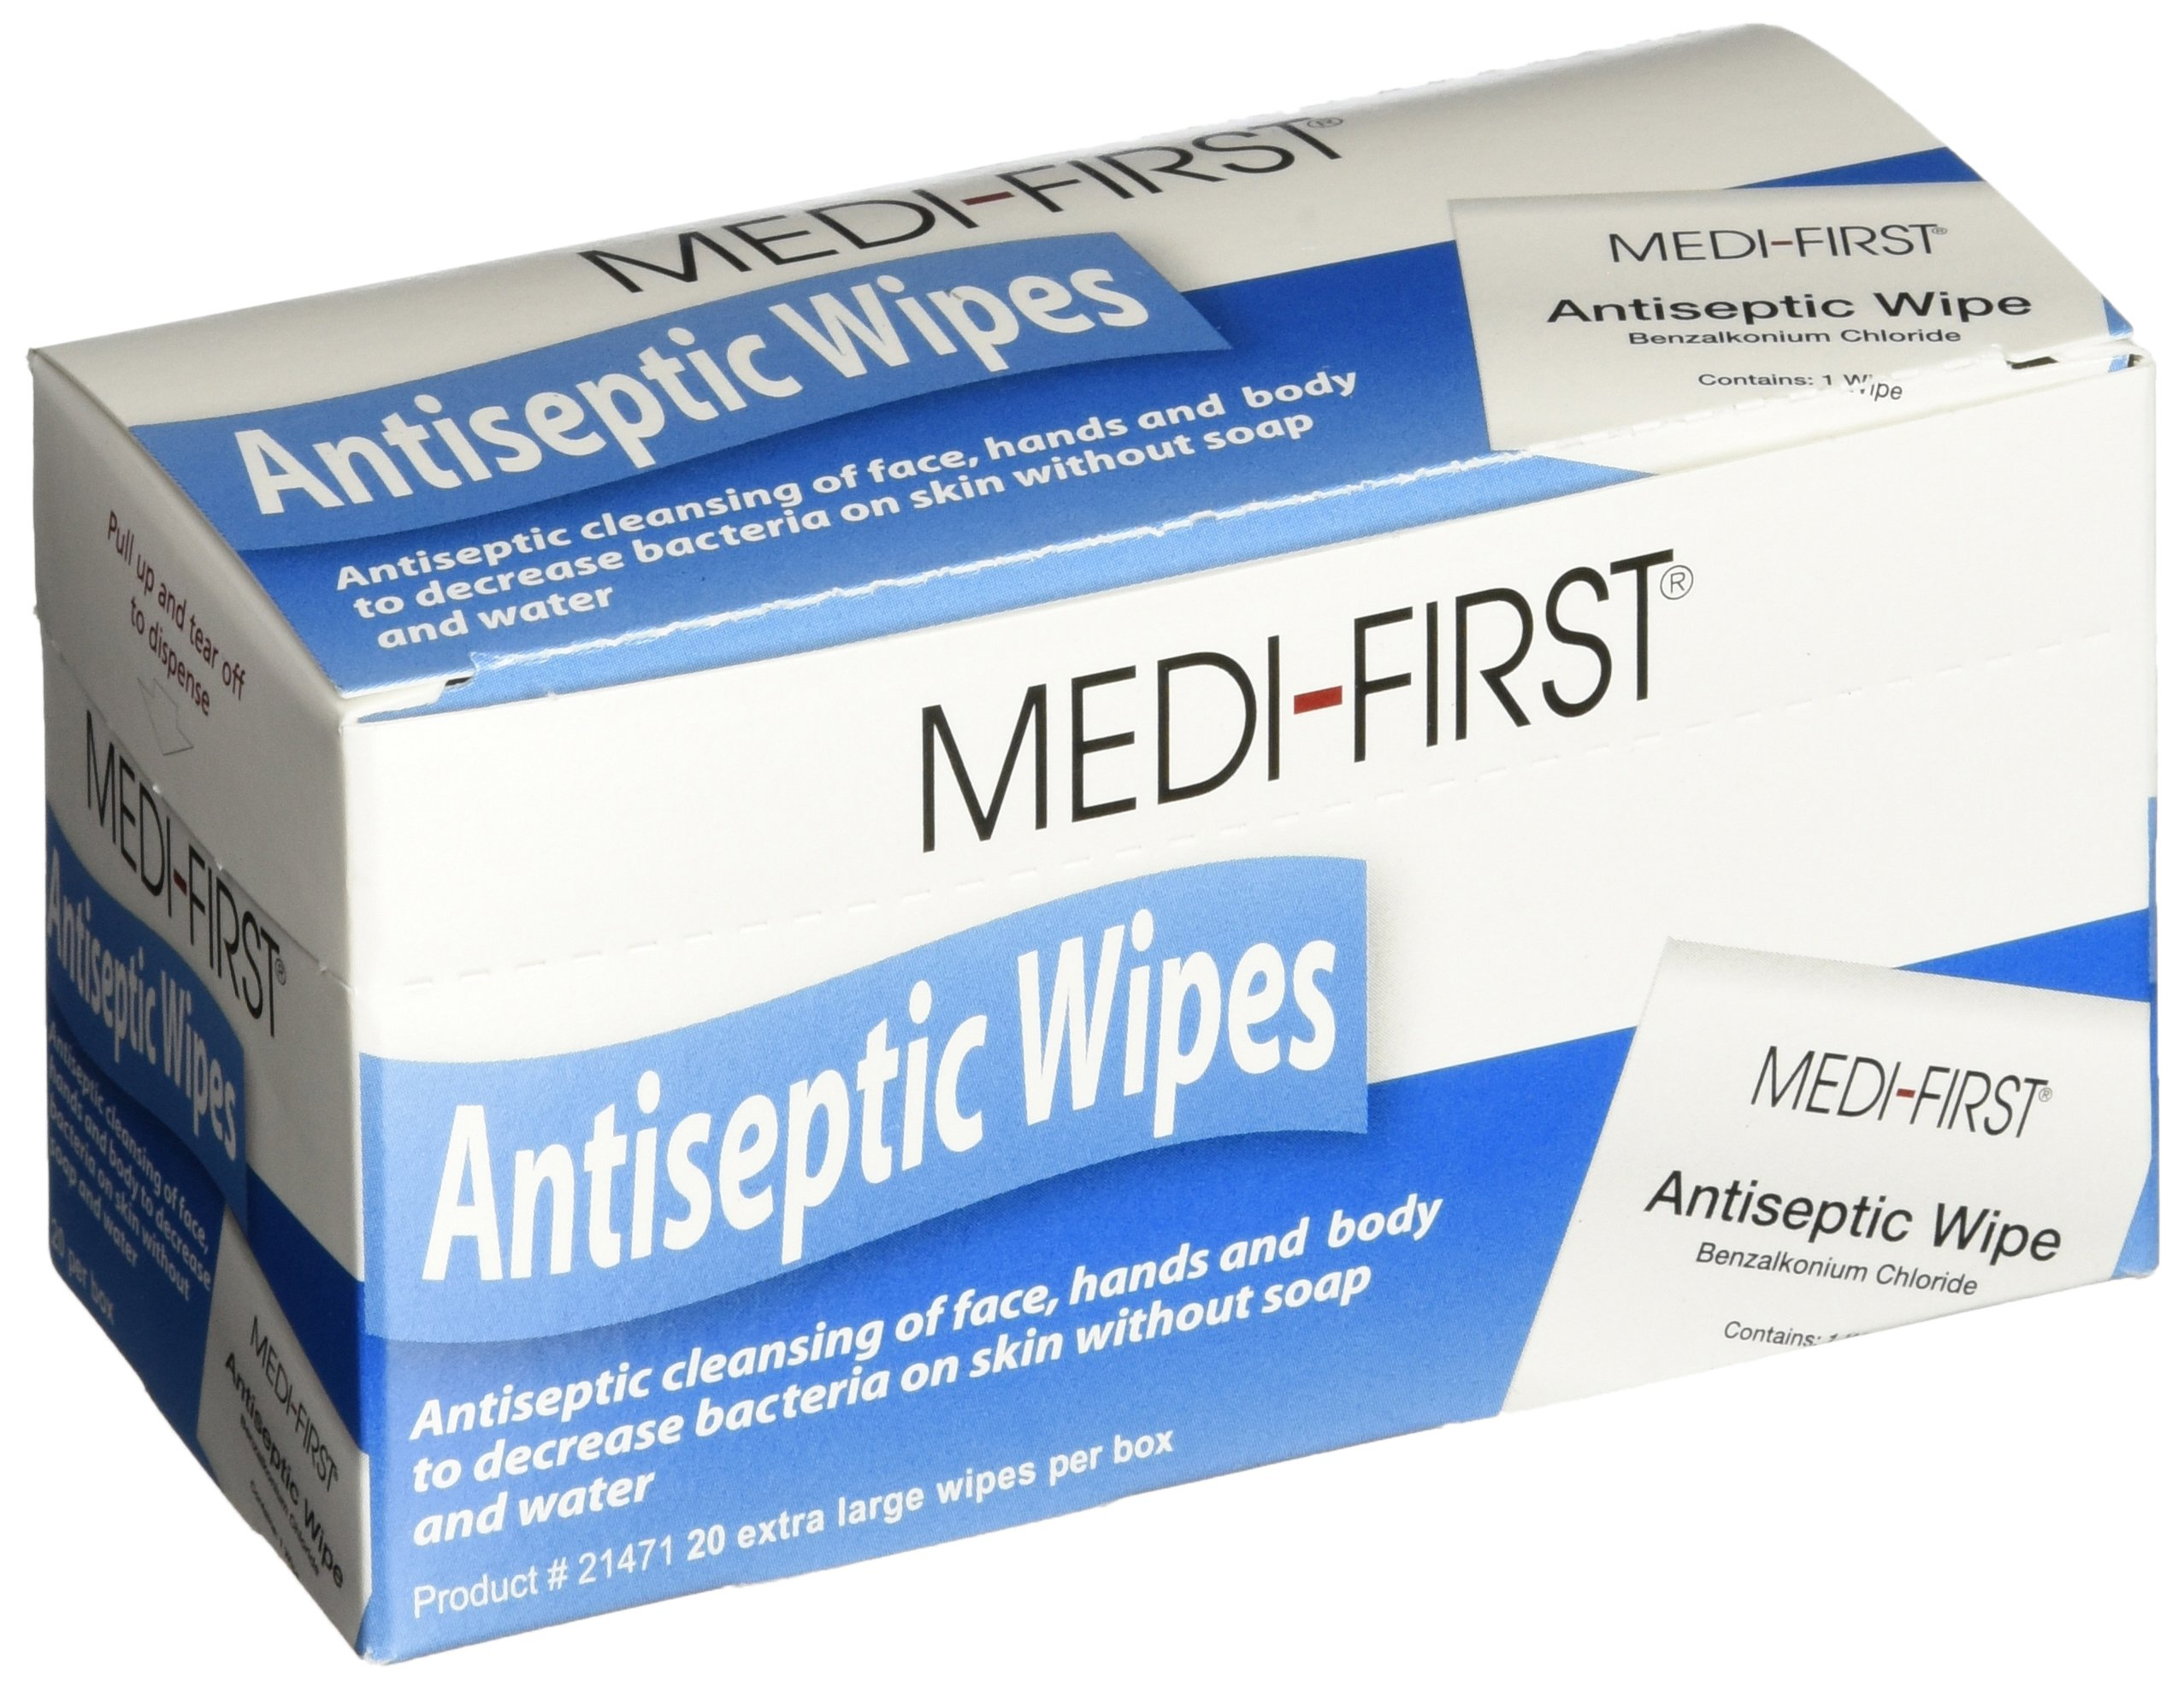 Medi-First Antiseptic Wipes, Benzalkonium Chloride Cleansing Towelettes, 20 Pack - 21471